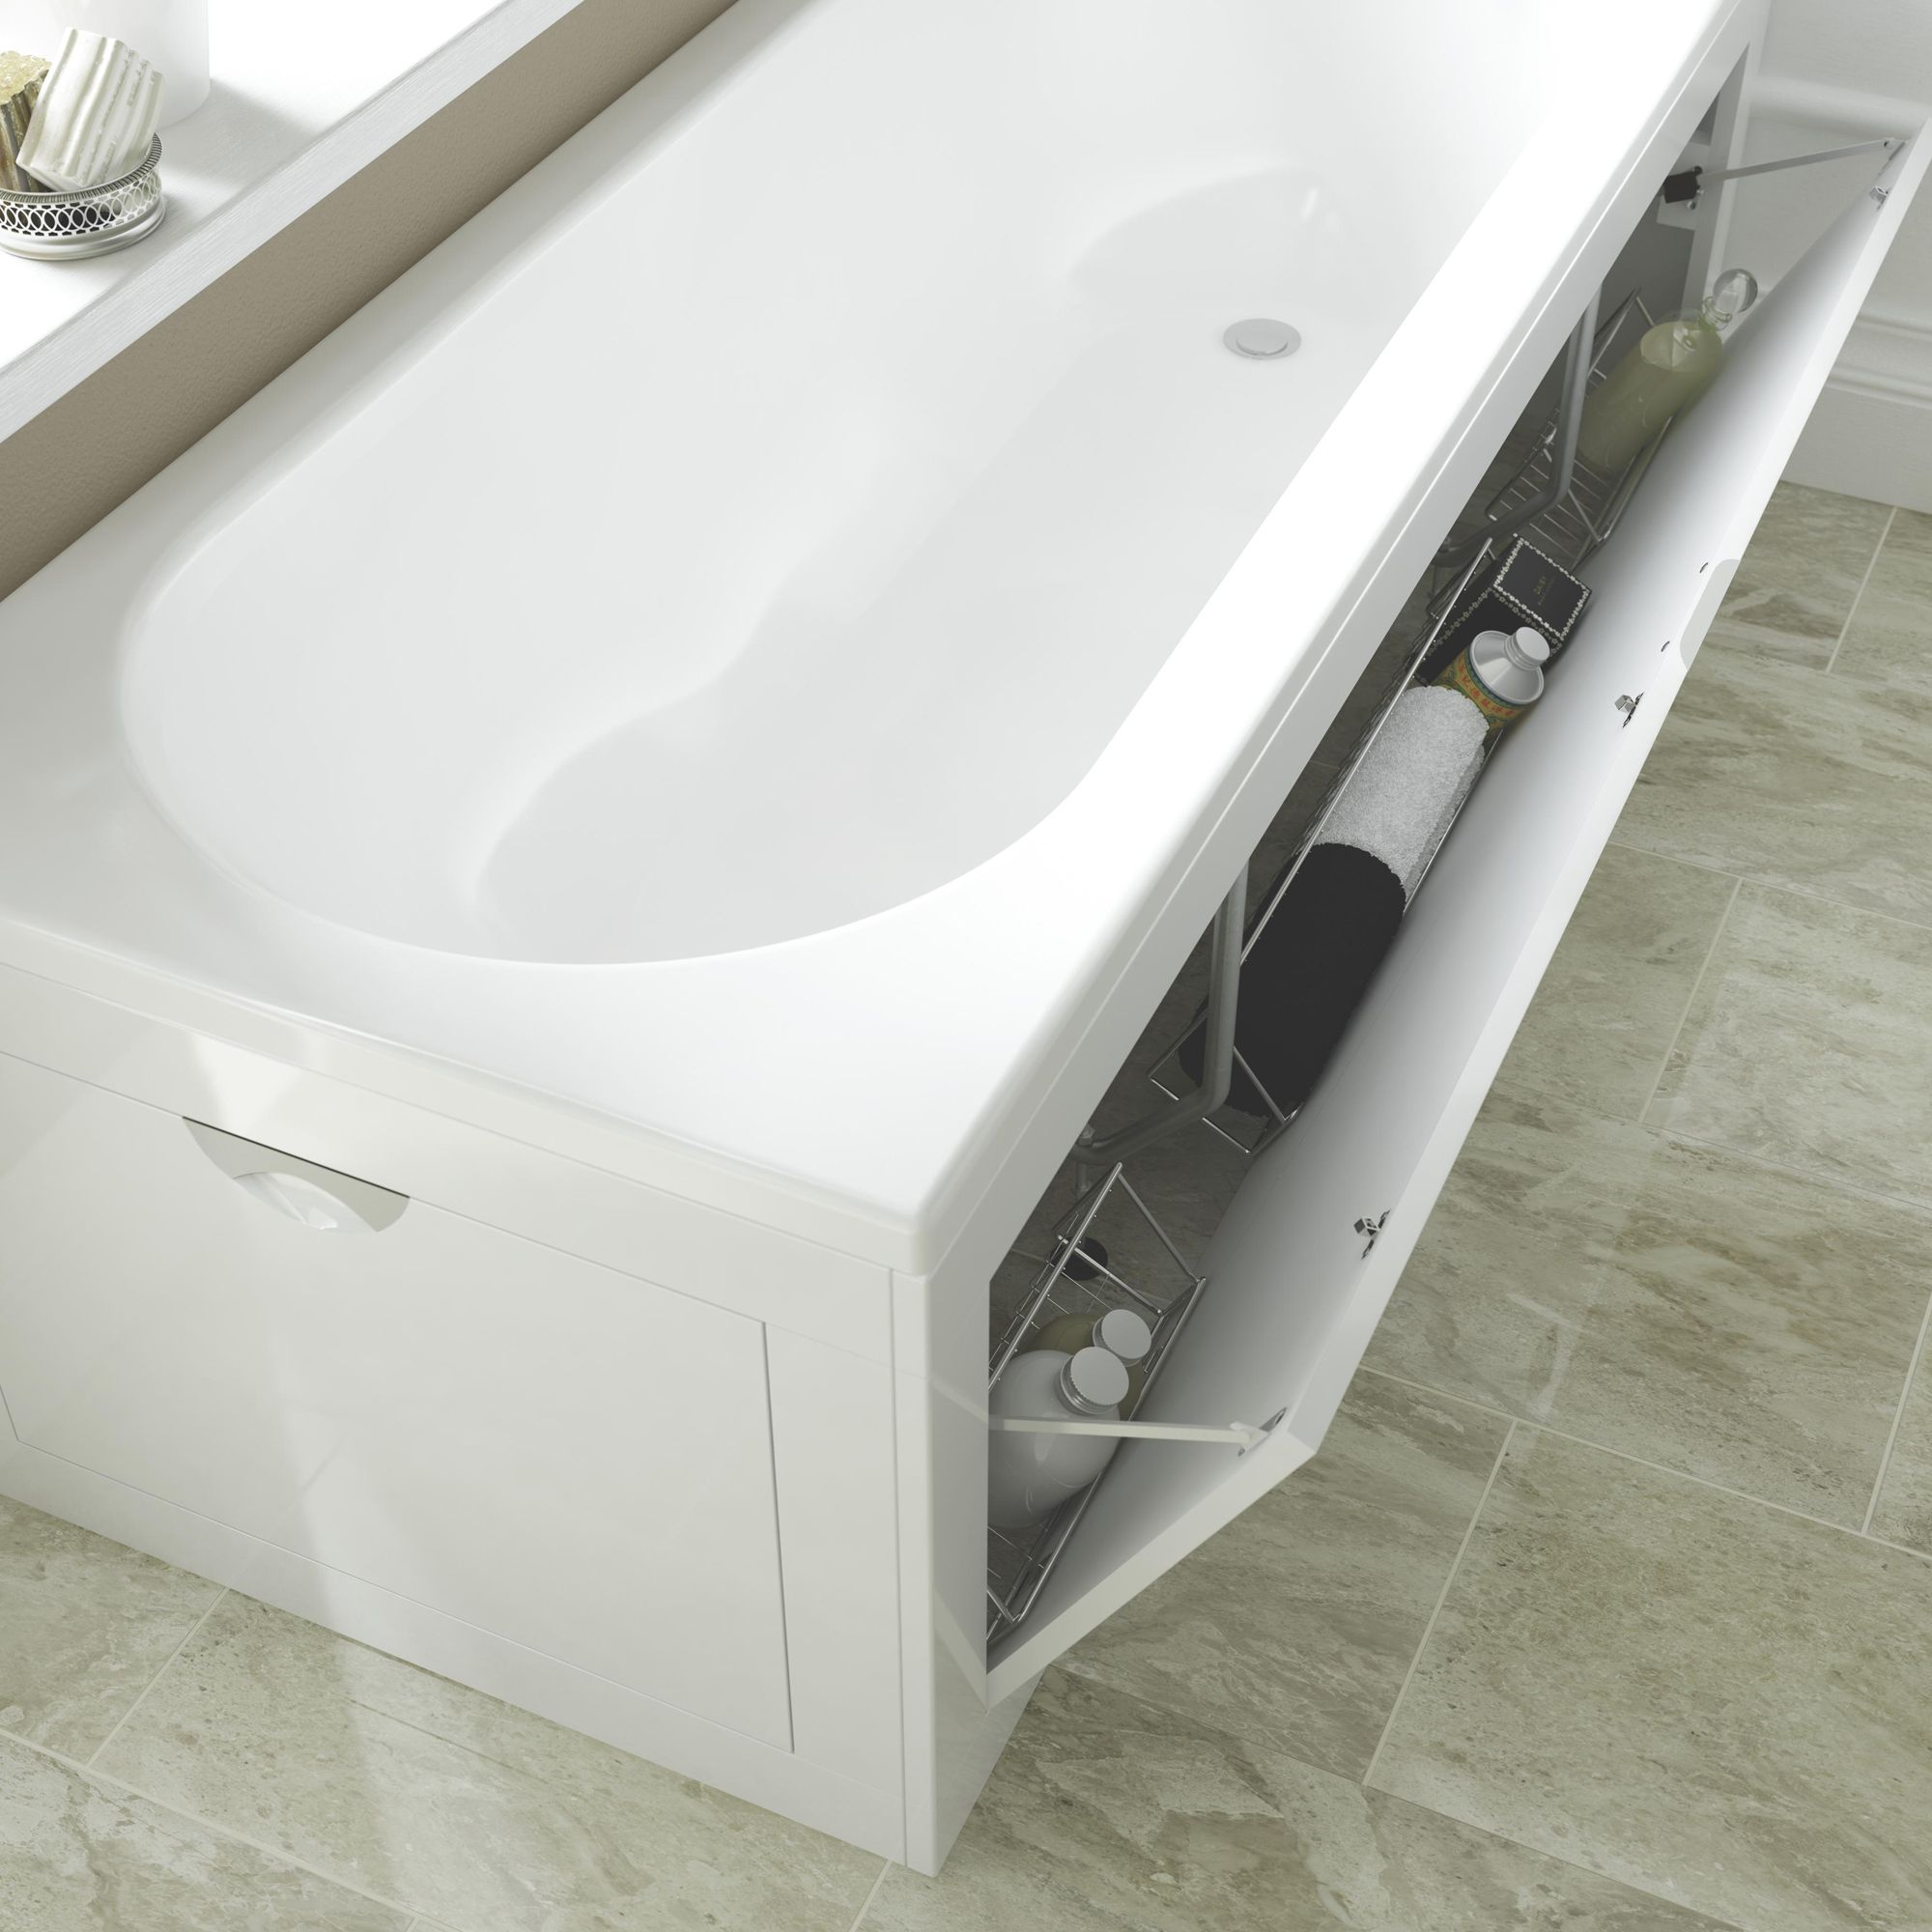 Cooke lewis gloss white bath front panel departments for Bathroom storage ideas b q